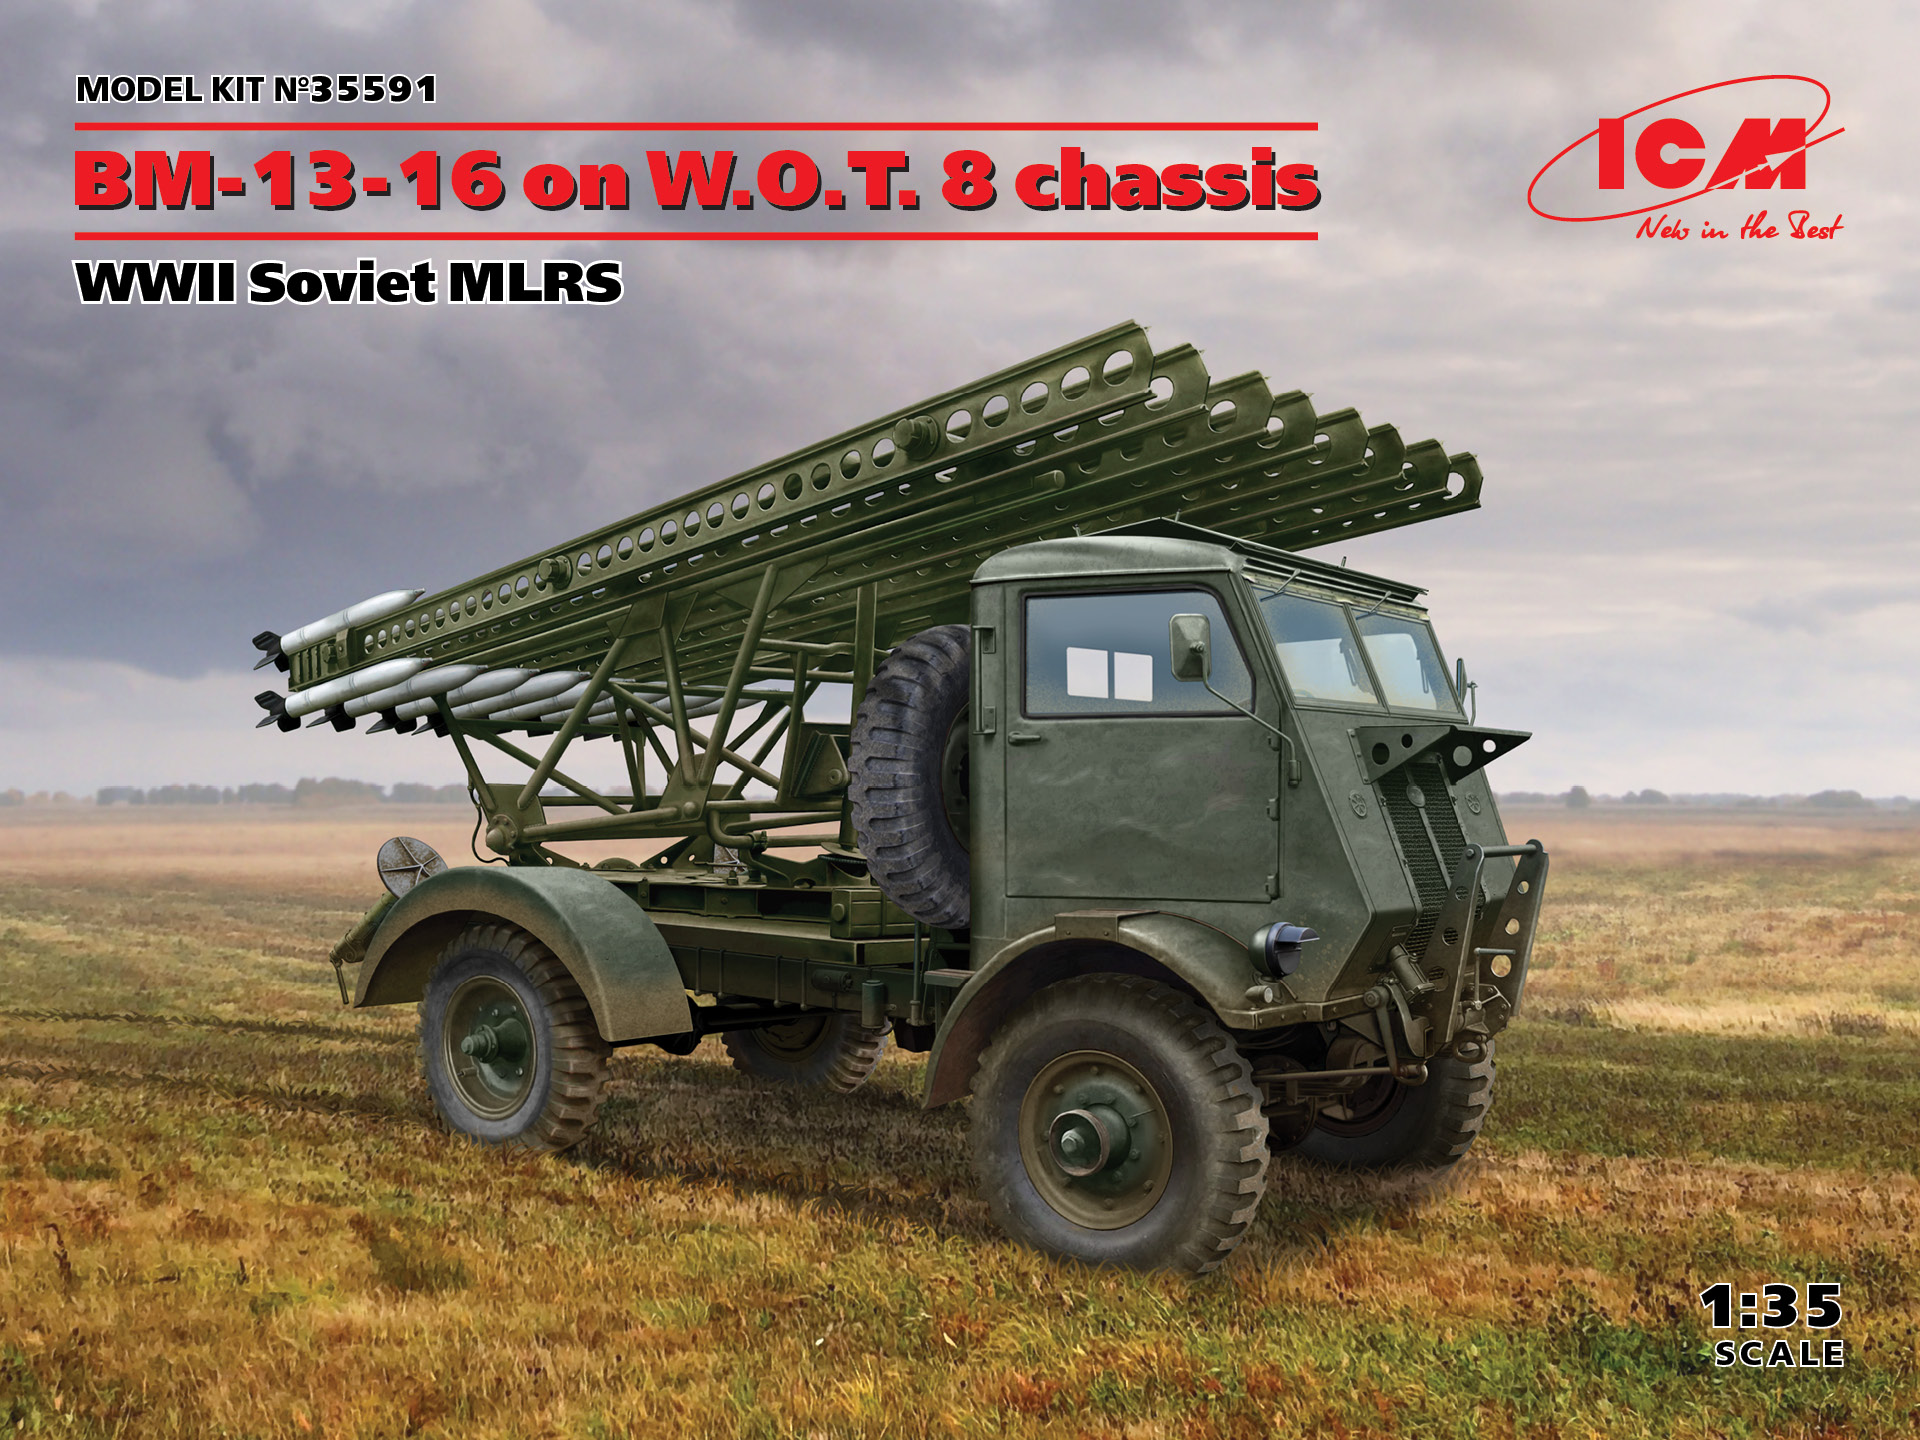 ICM BM-13-16 on W.O.T. 8 chassis, WWII Soviet MLRS 1/35 Scale